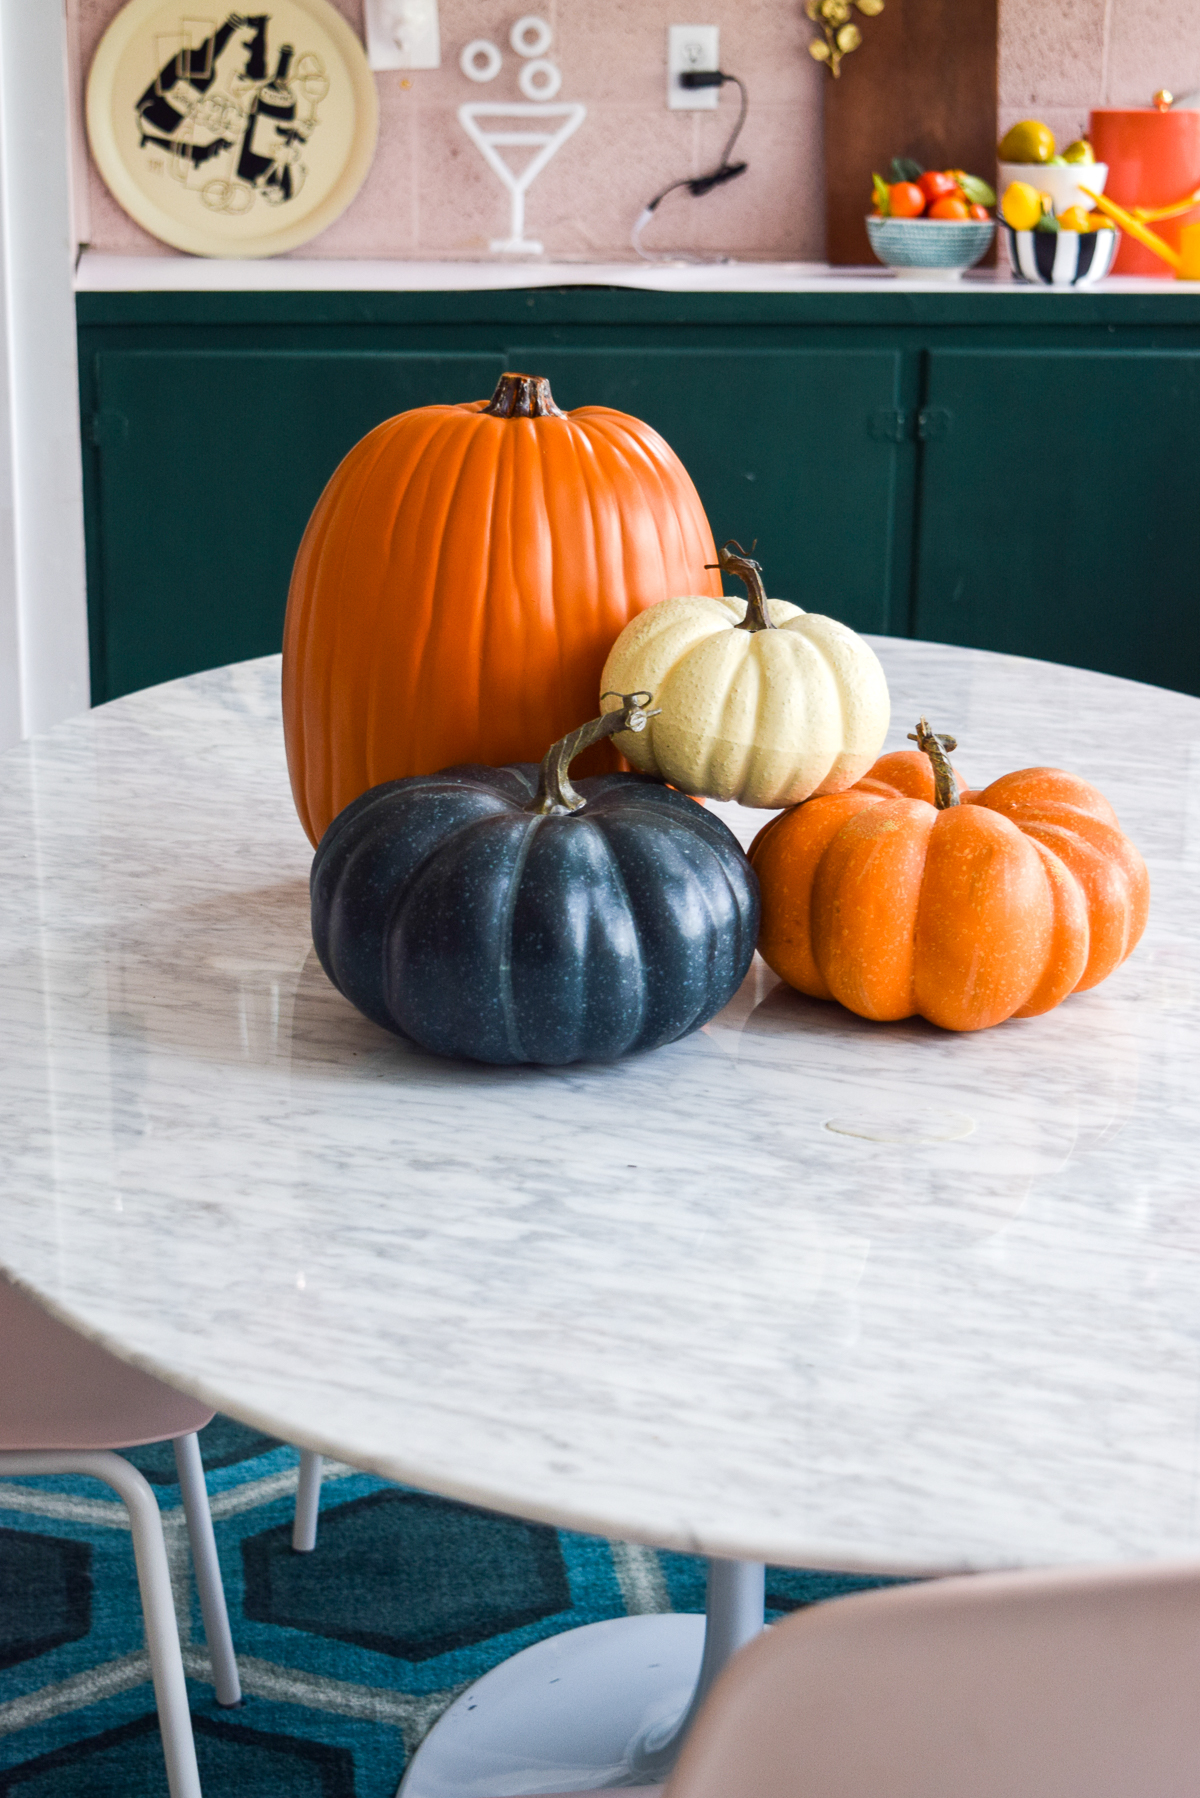 plastic pumpkins on a table